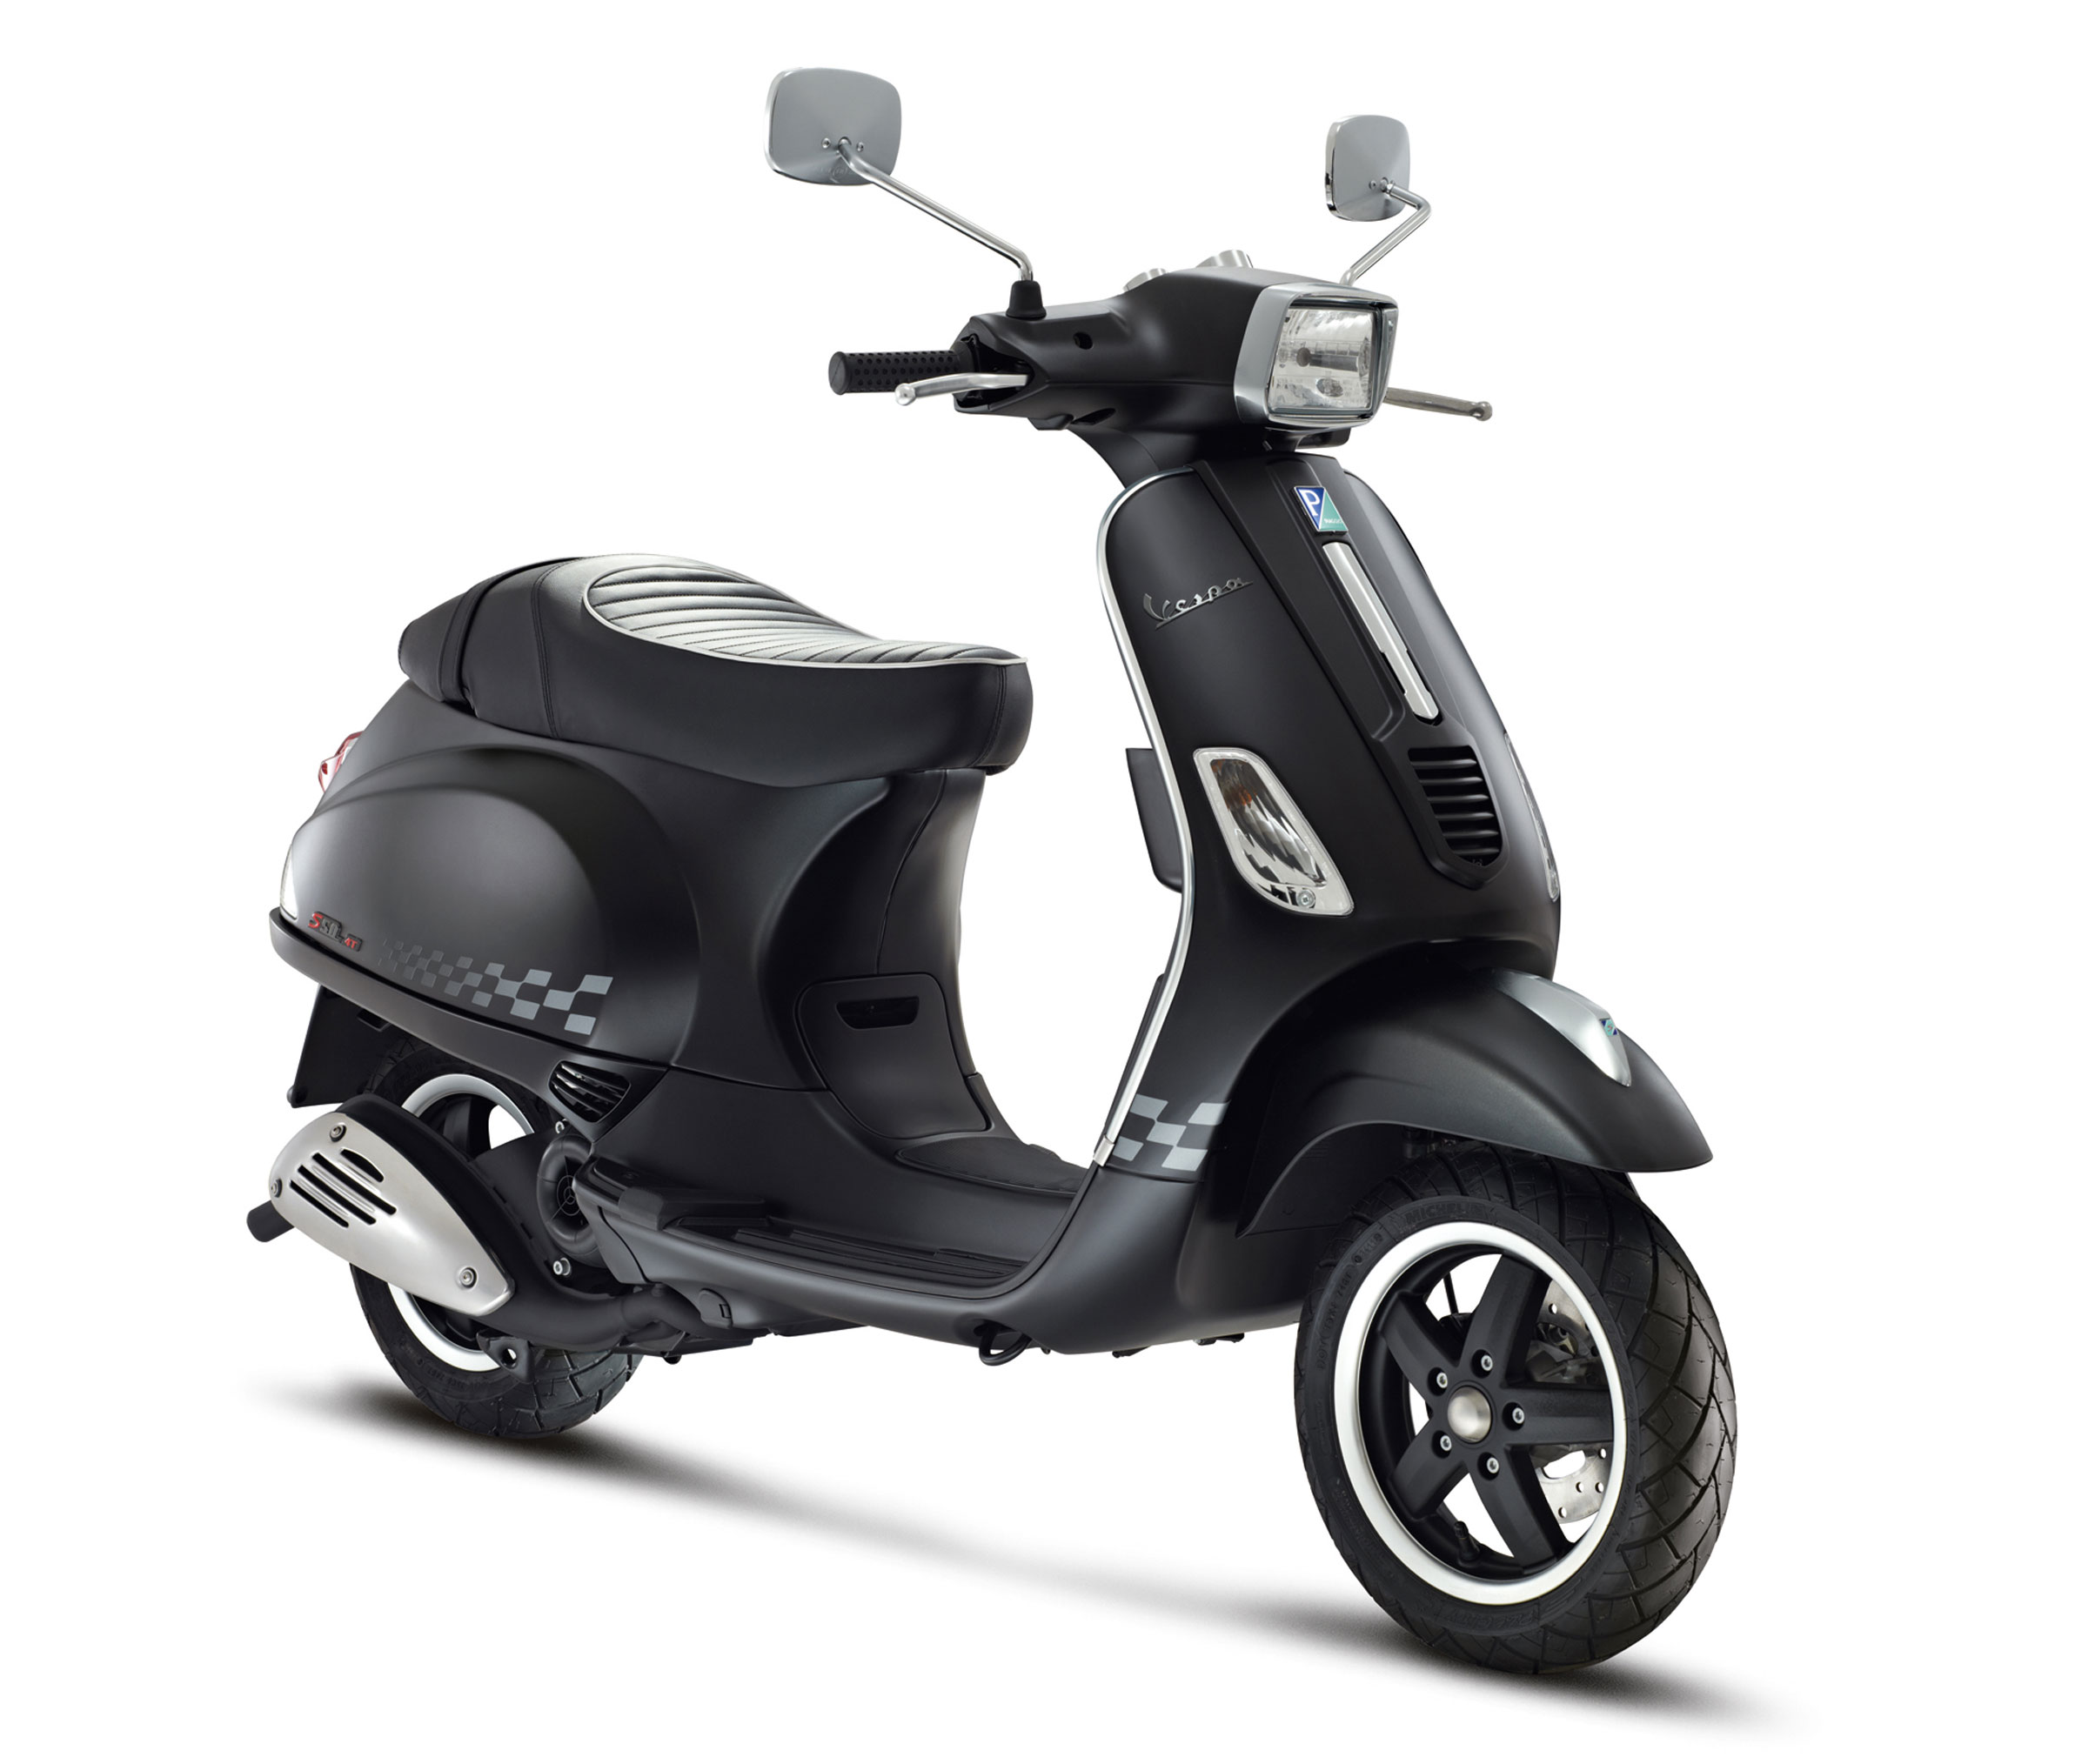 vespa s 150 i e super sport se 2012 2013 autoevolution. Black Bedroom Furniture Sets. Home Design Ideas